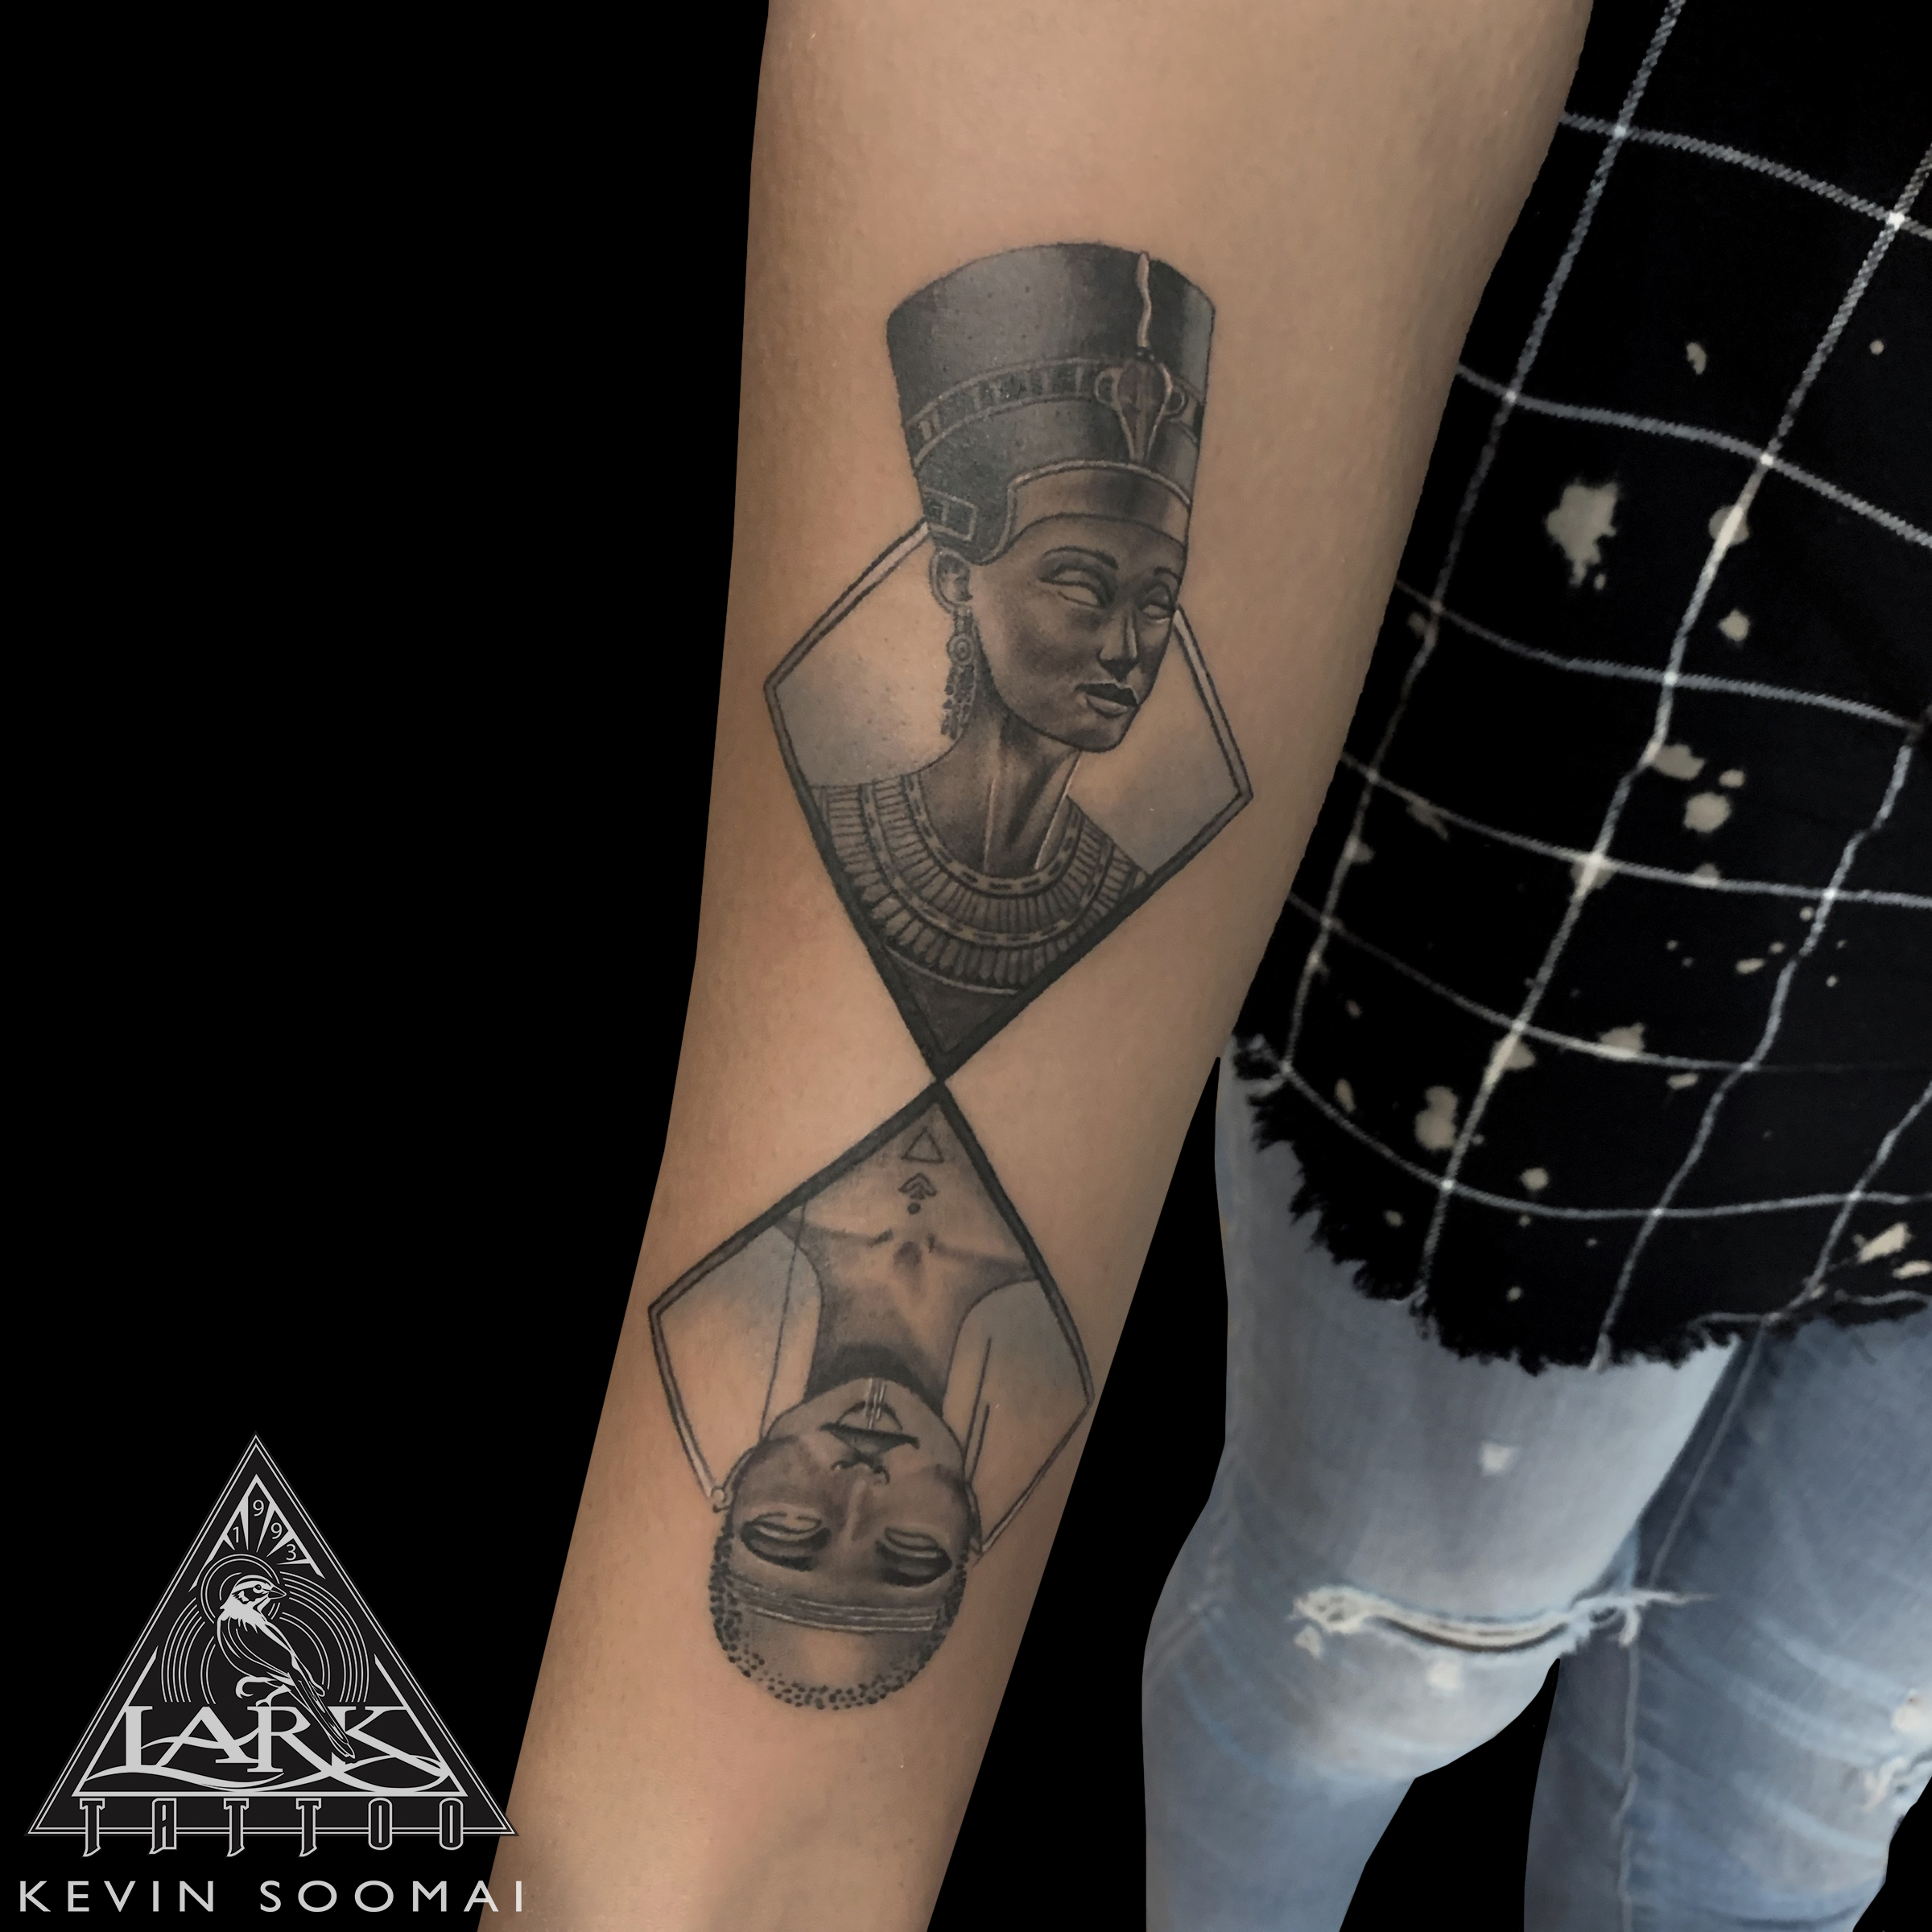 LarkTattoo, KevinSoomai, KevinSoomaiTattoo, KevinSoomaiLarkTattoo, Tattoo, Tattoos, Nefertiti, NefertitiTattoo, NeferneferuatenNefertiti, NeferneferuatenNefertitiTattoo, Queen, QueenTattoo, Egyptian, EgyptianTattoo, EgyptianQueen, EgyptianQueenTattoo, SaraGolish, SaraGolishTattoo, BNG, BNGTattoo, BlackAndGray, BlackAndGrayTattoo, BlackAndGrey, BlackAndGreyTattoo, Portrait, PortraitTattoo, TattooArtist, Tattoist, Tattooer, LongIslandTattooArtist, LongIslandTattooer, LongIslandTattoo, TattooOfTheDay, Tat, Tats, Tatts, Tatted, Inked, Ink, TattooInk, AmazingInk, AmazingTattoo, BodyArt, LarkTattooWestbury, Westbury, LongIsland, NY, NewYork, USA, Art, Tattedup, InkedUp, LarkTattoos